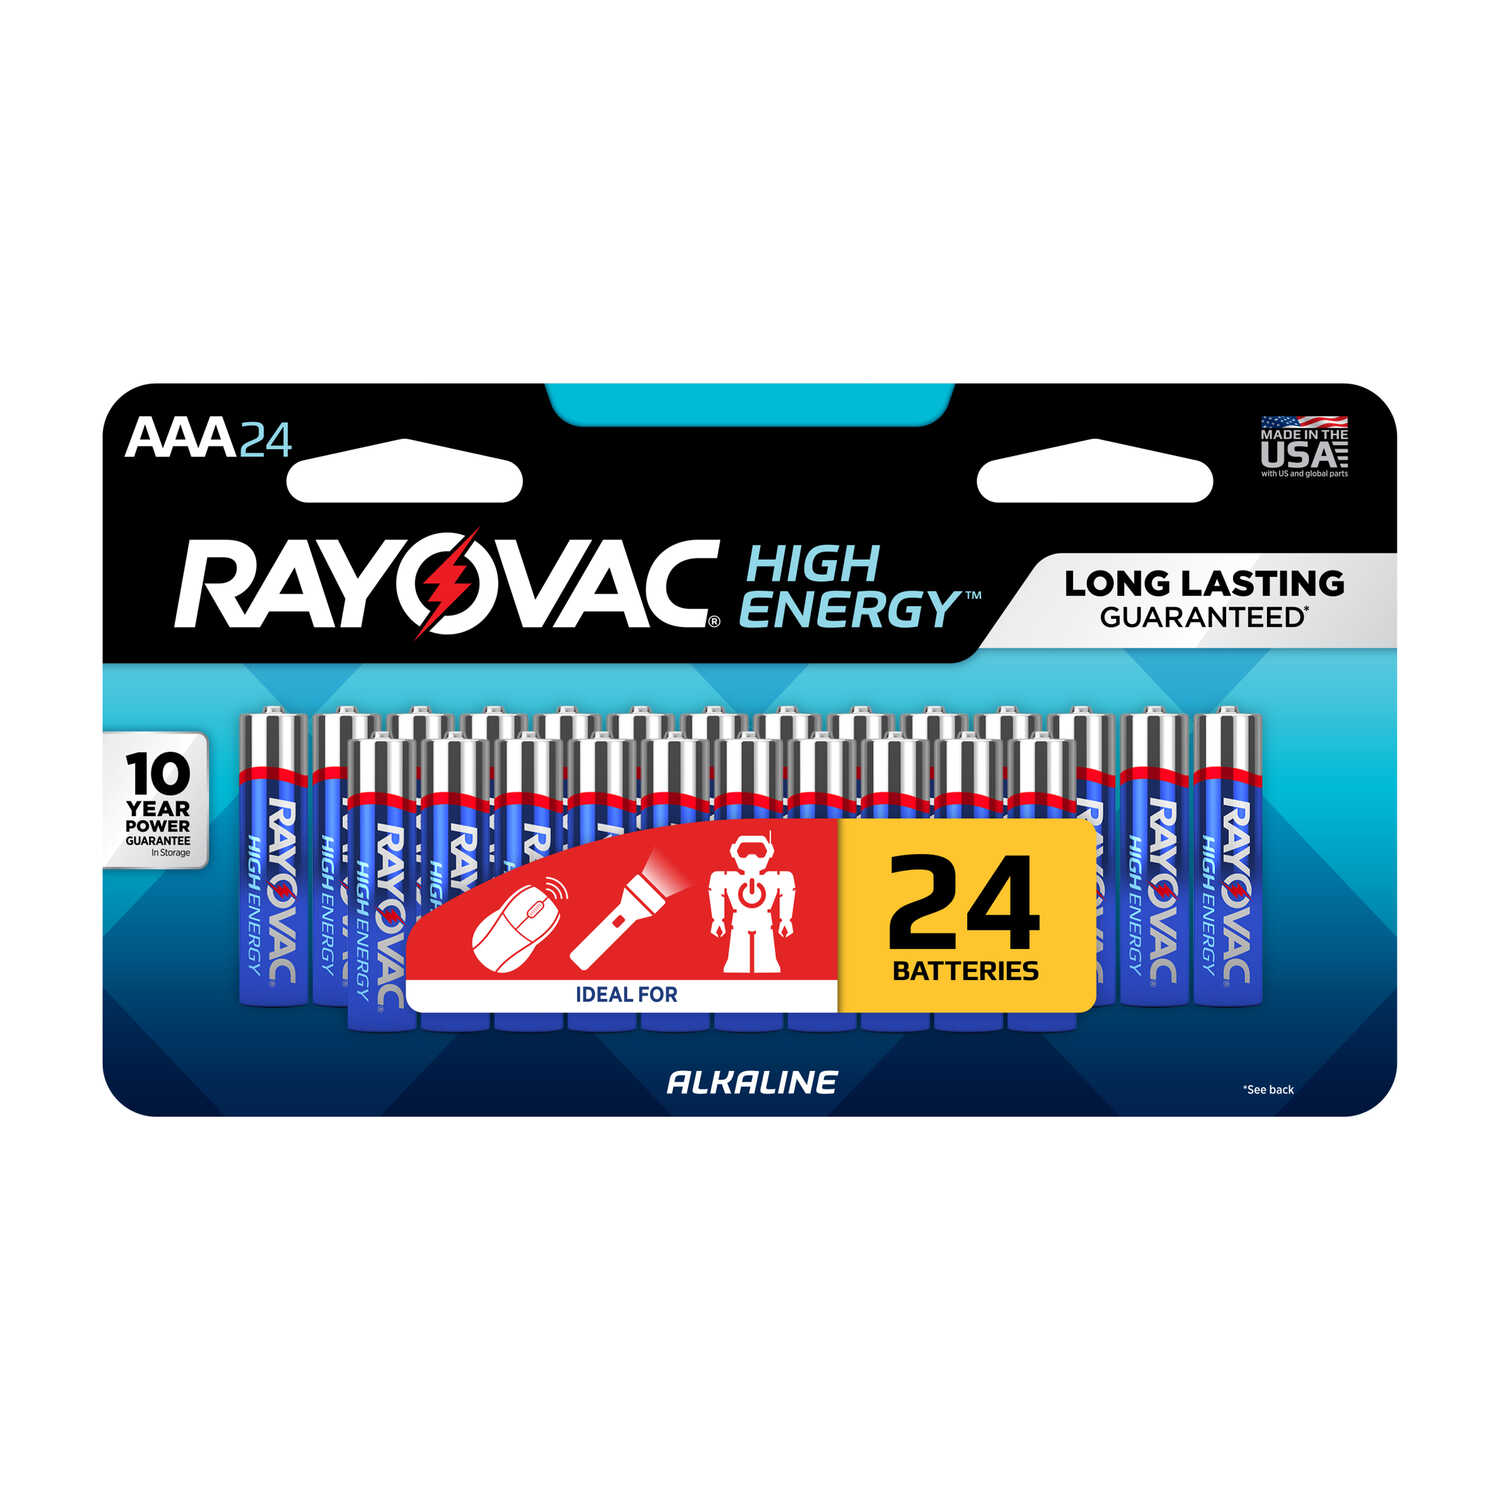 Rayovac  AAA  Alkaline  Batteries  1.5 volts 24 pk Carded